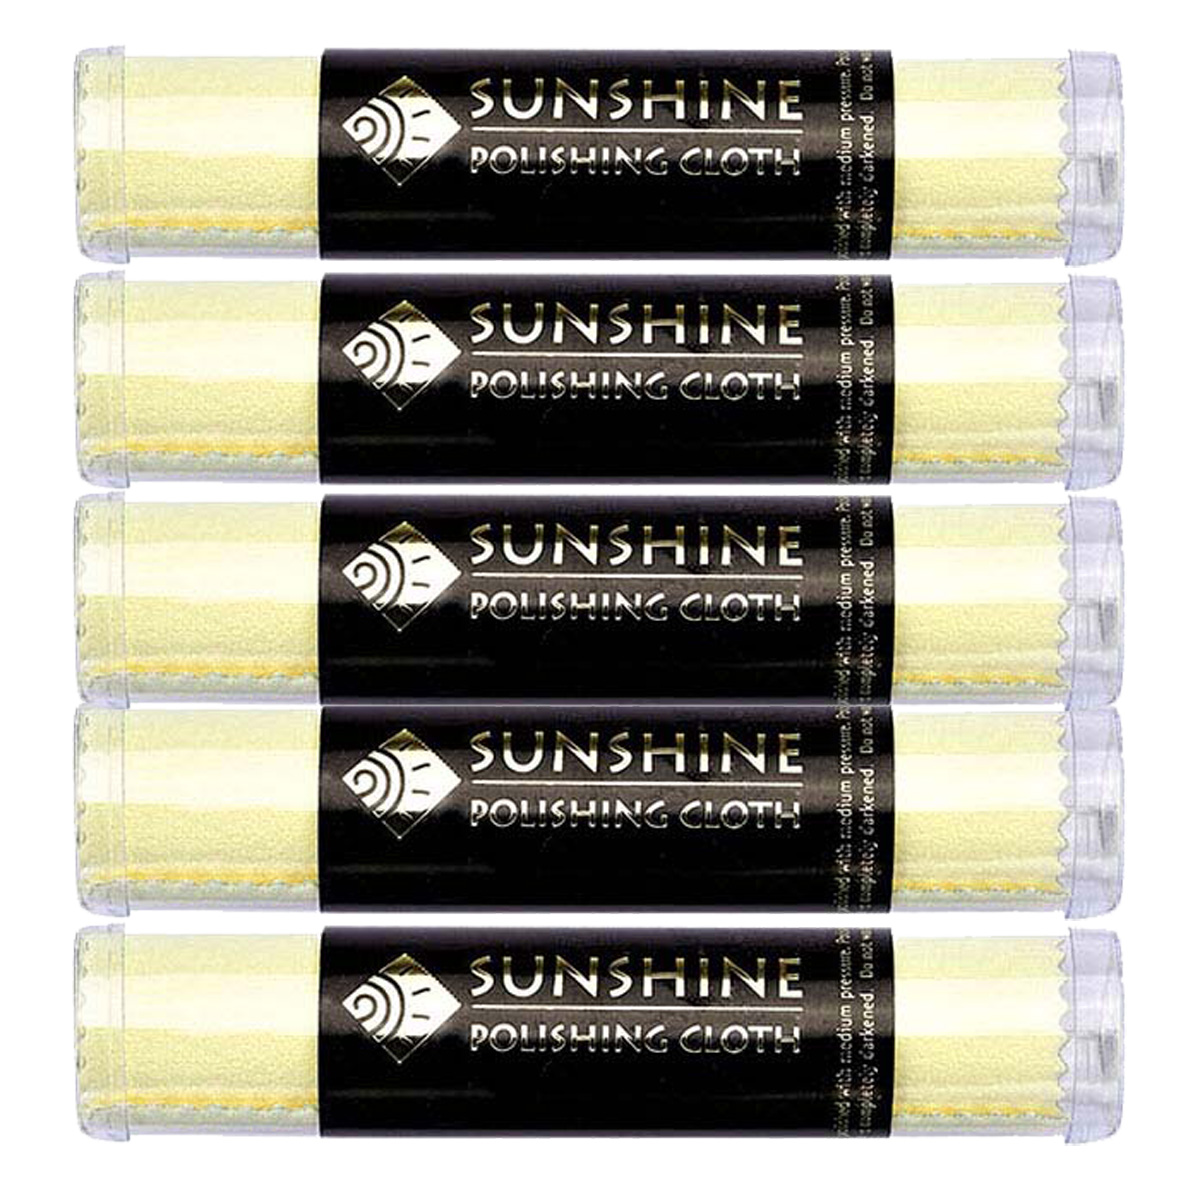 Sunshine Polishing Clothes in Tubes, 5 Pack